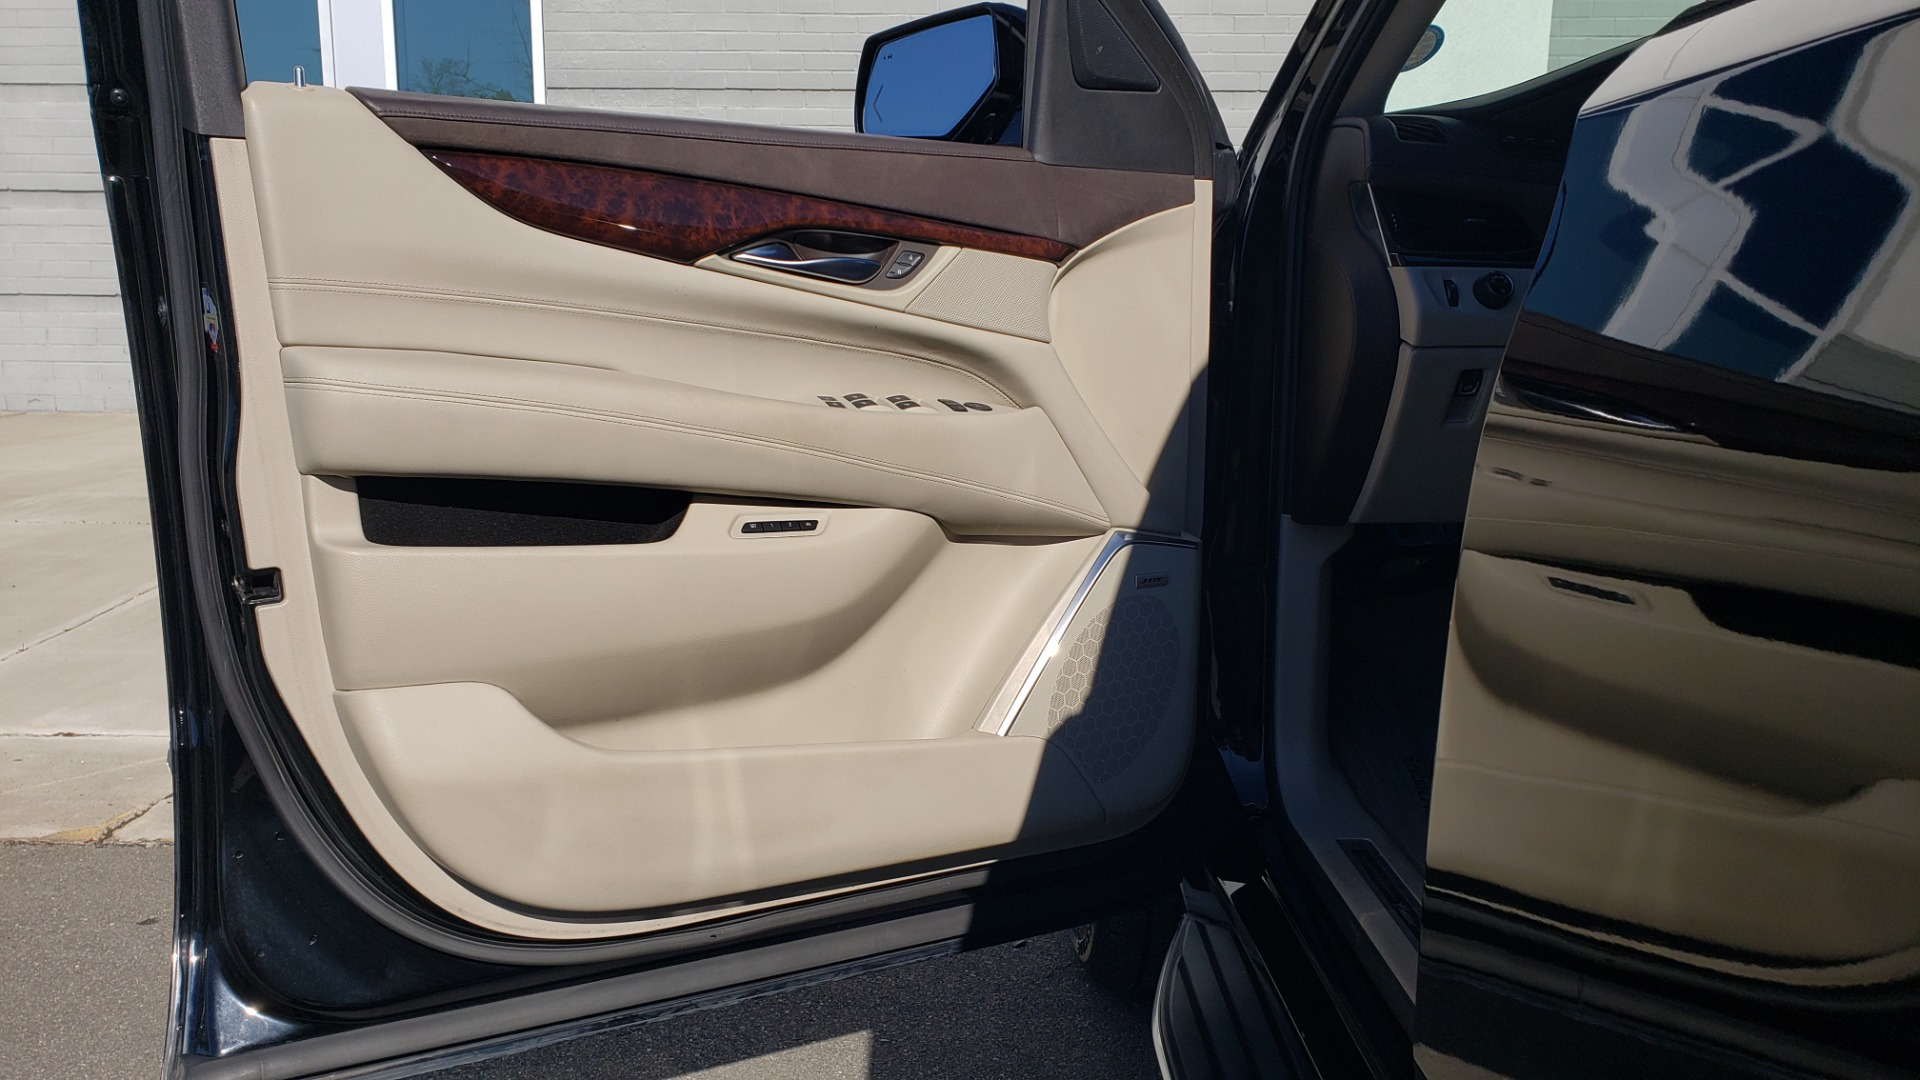 Used 2015 Cadillac ESCALADE PREMIUM 4WD / NAV / SUNROOF / REARVIEW / 3-ROW for sale Sold at Formula Imports in Charlotte NC 28227 33